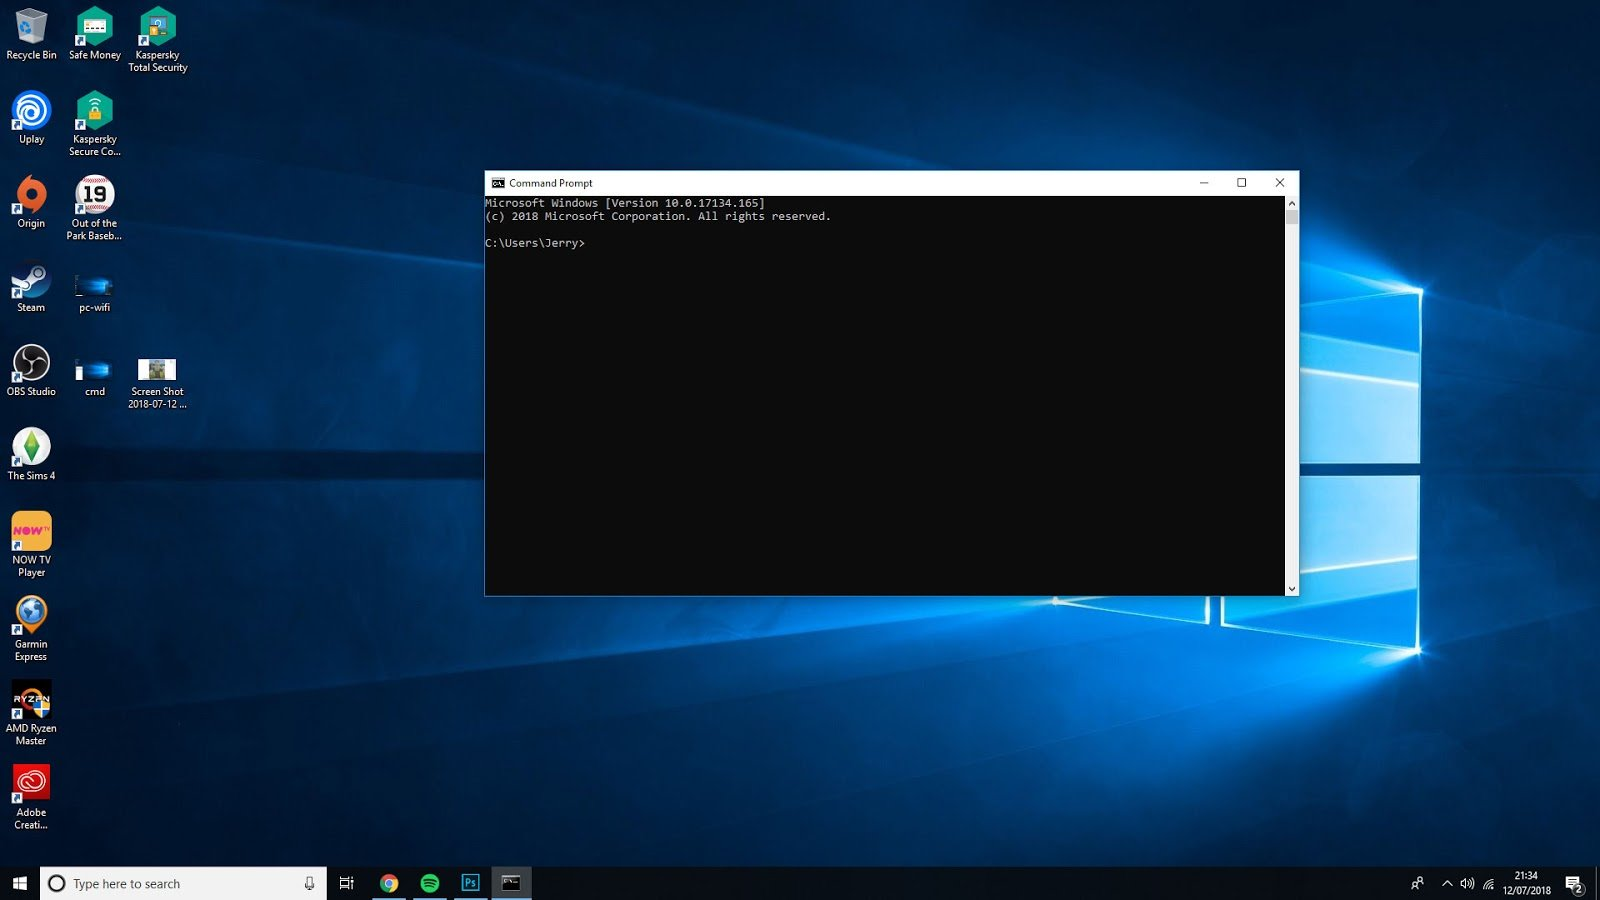 Command Prompt box open